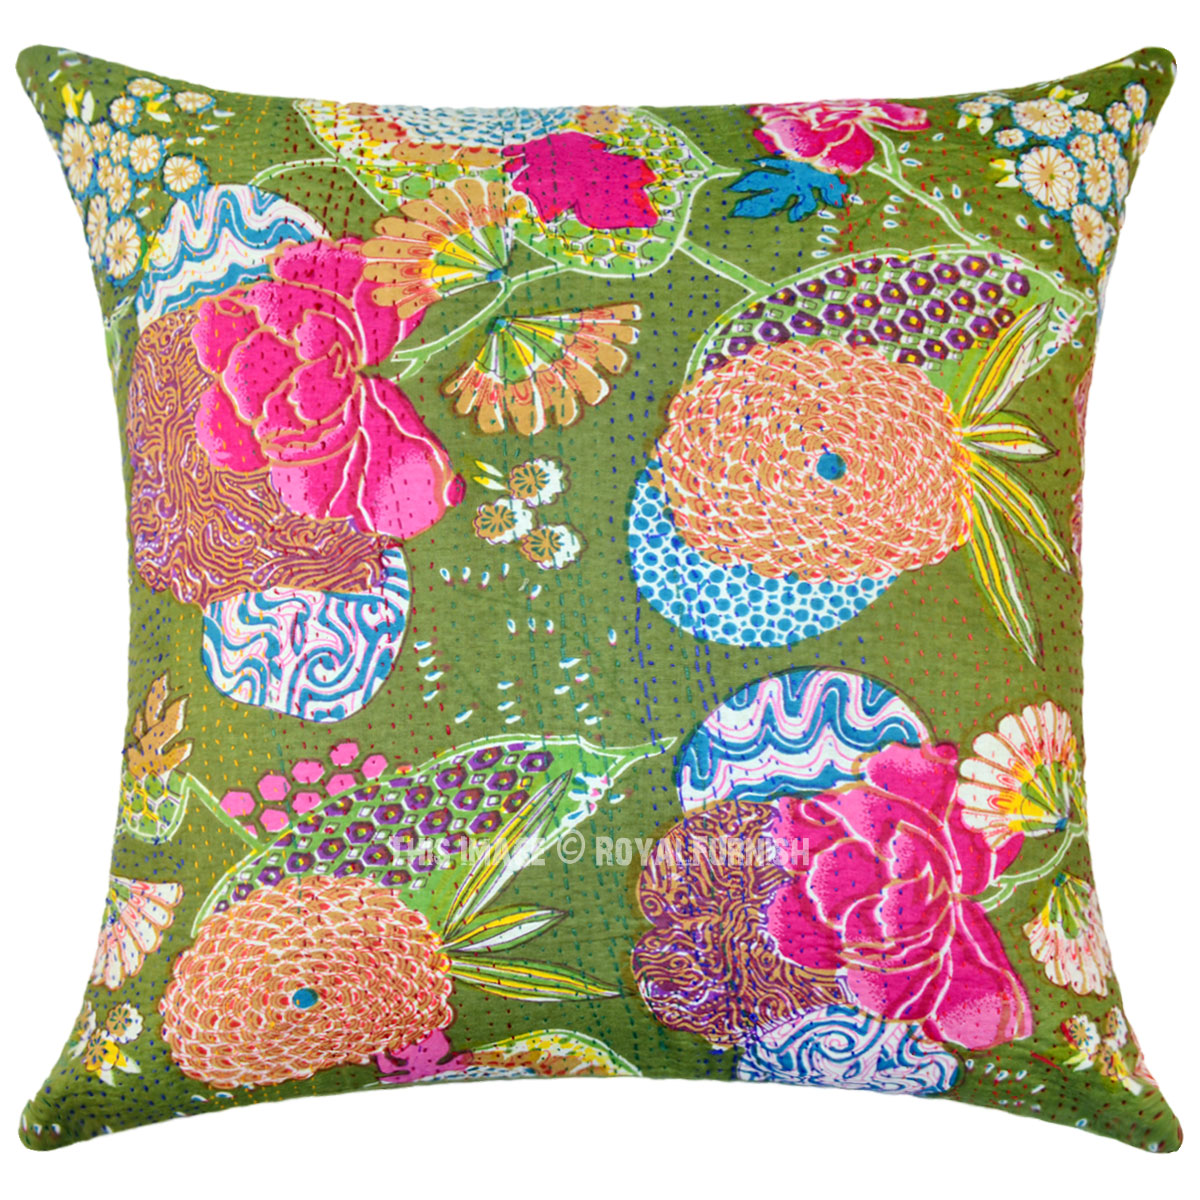 Tropical Throw Pillows For Couch : 24